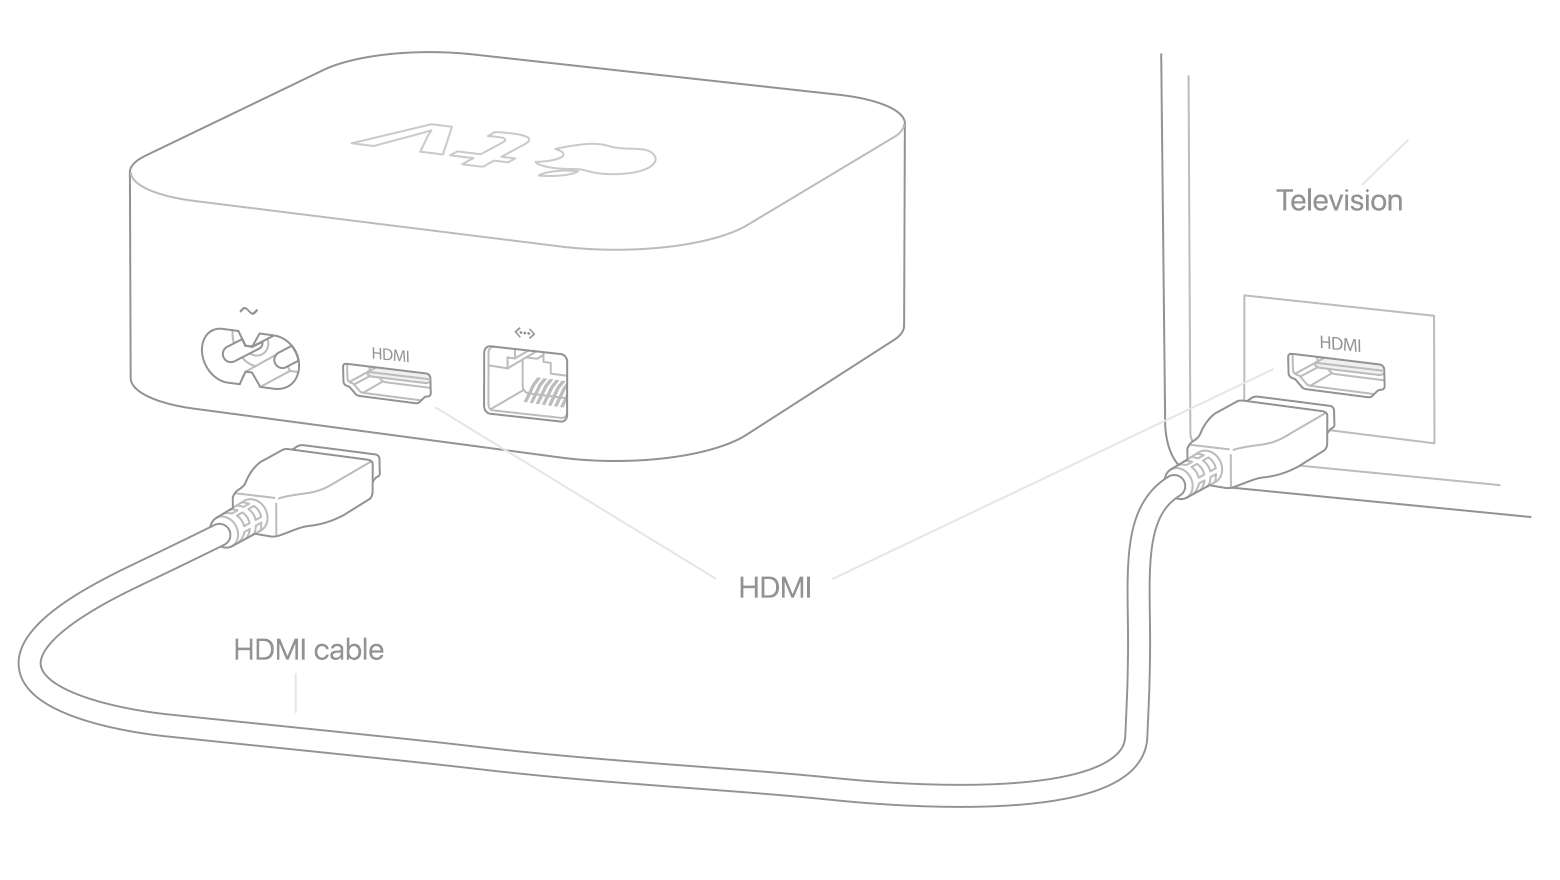 set up your apple tv - apple support apple tv connections diagram #3